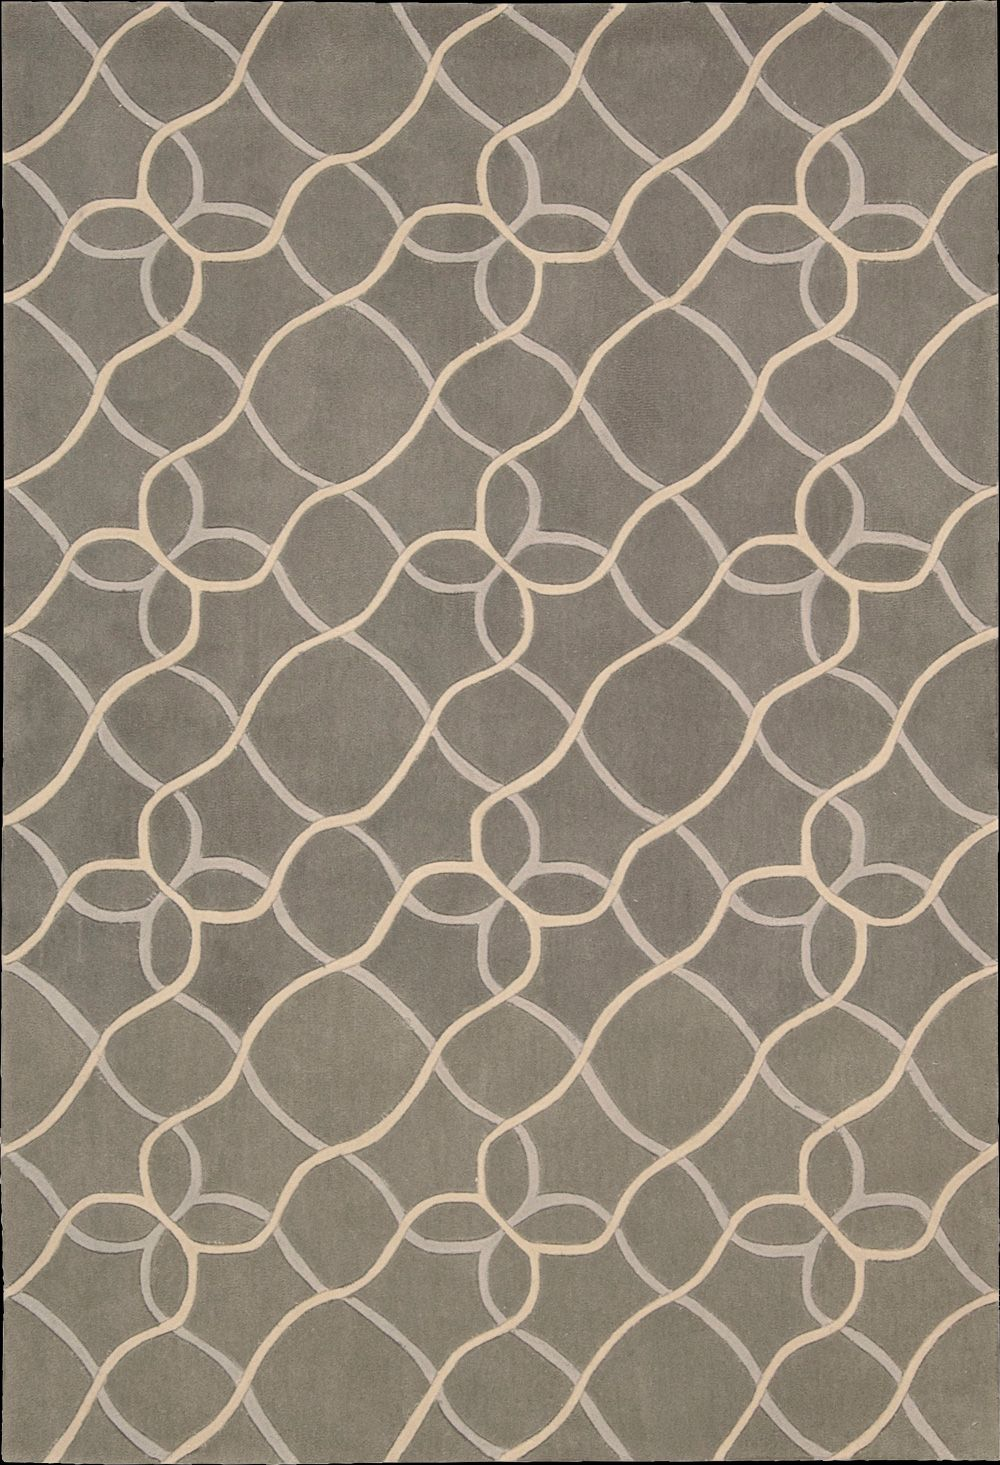 nourison contour contemporary area rug collection